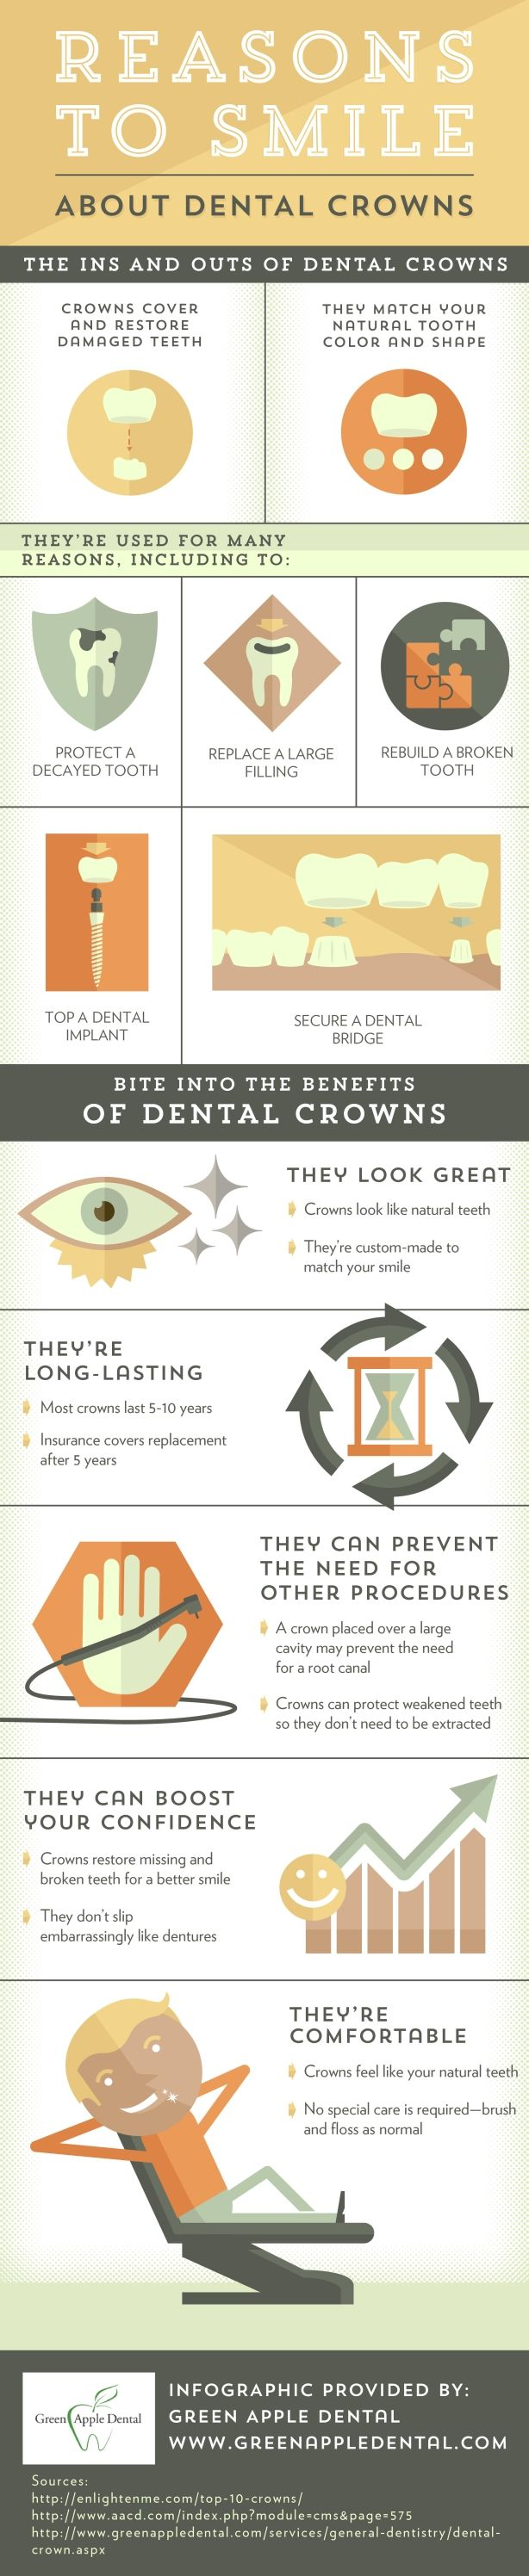 Most Dental Crowns Last Between 5 And 10 Years! Insurance Typically Covers  Replacement After 5